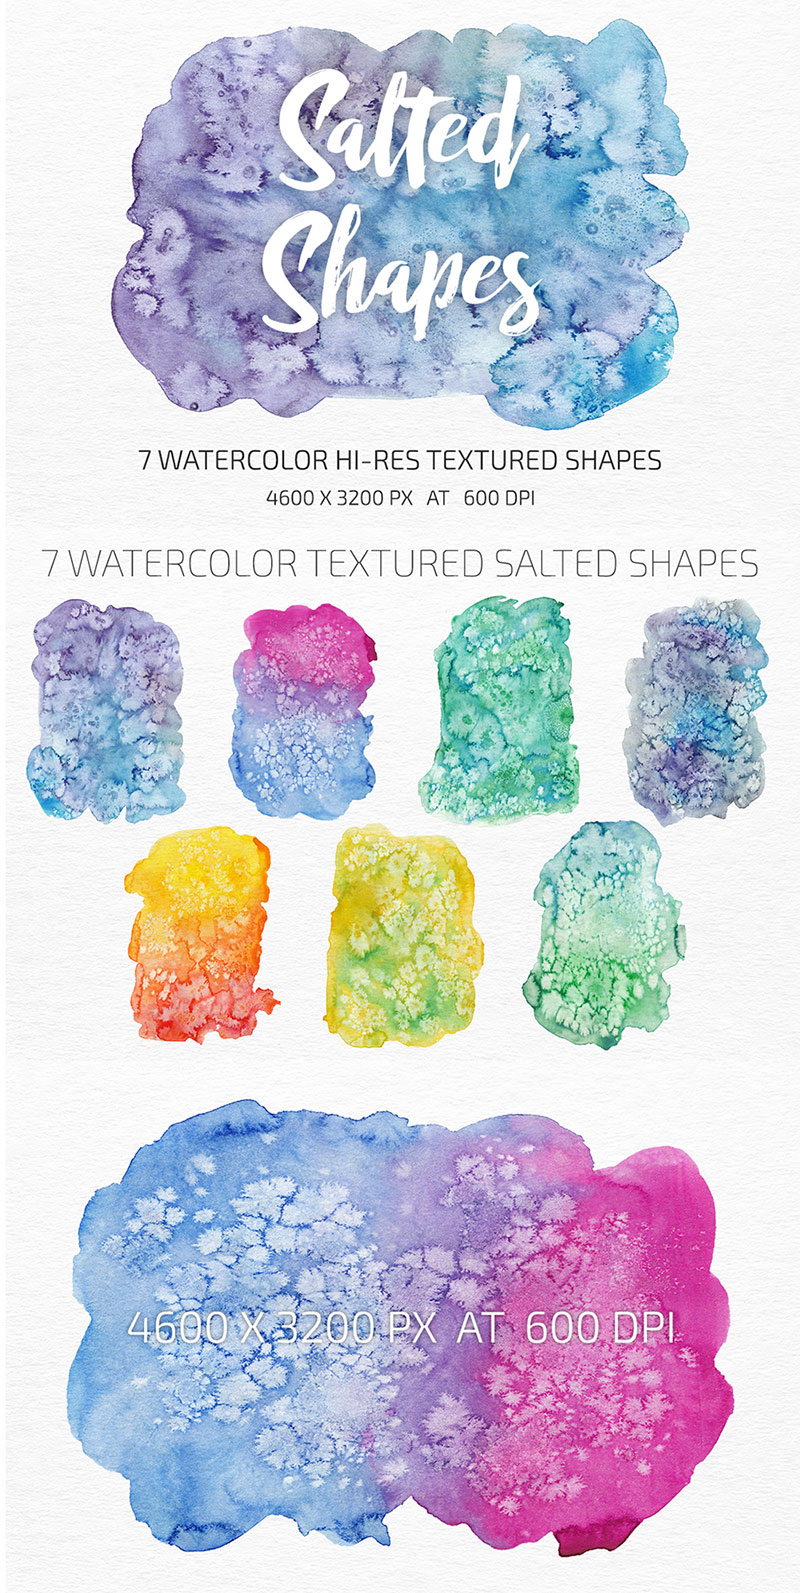 7-watercolor-salted-shapes_draw-ing-zen_120318_prev01